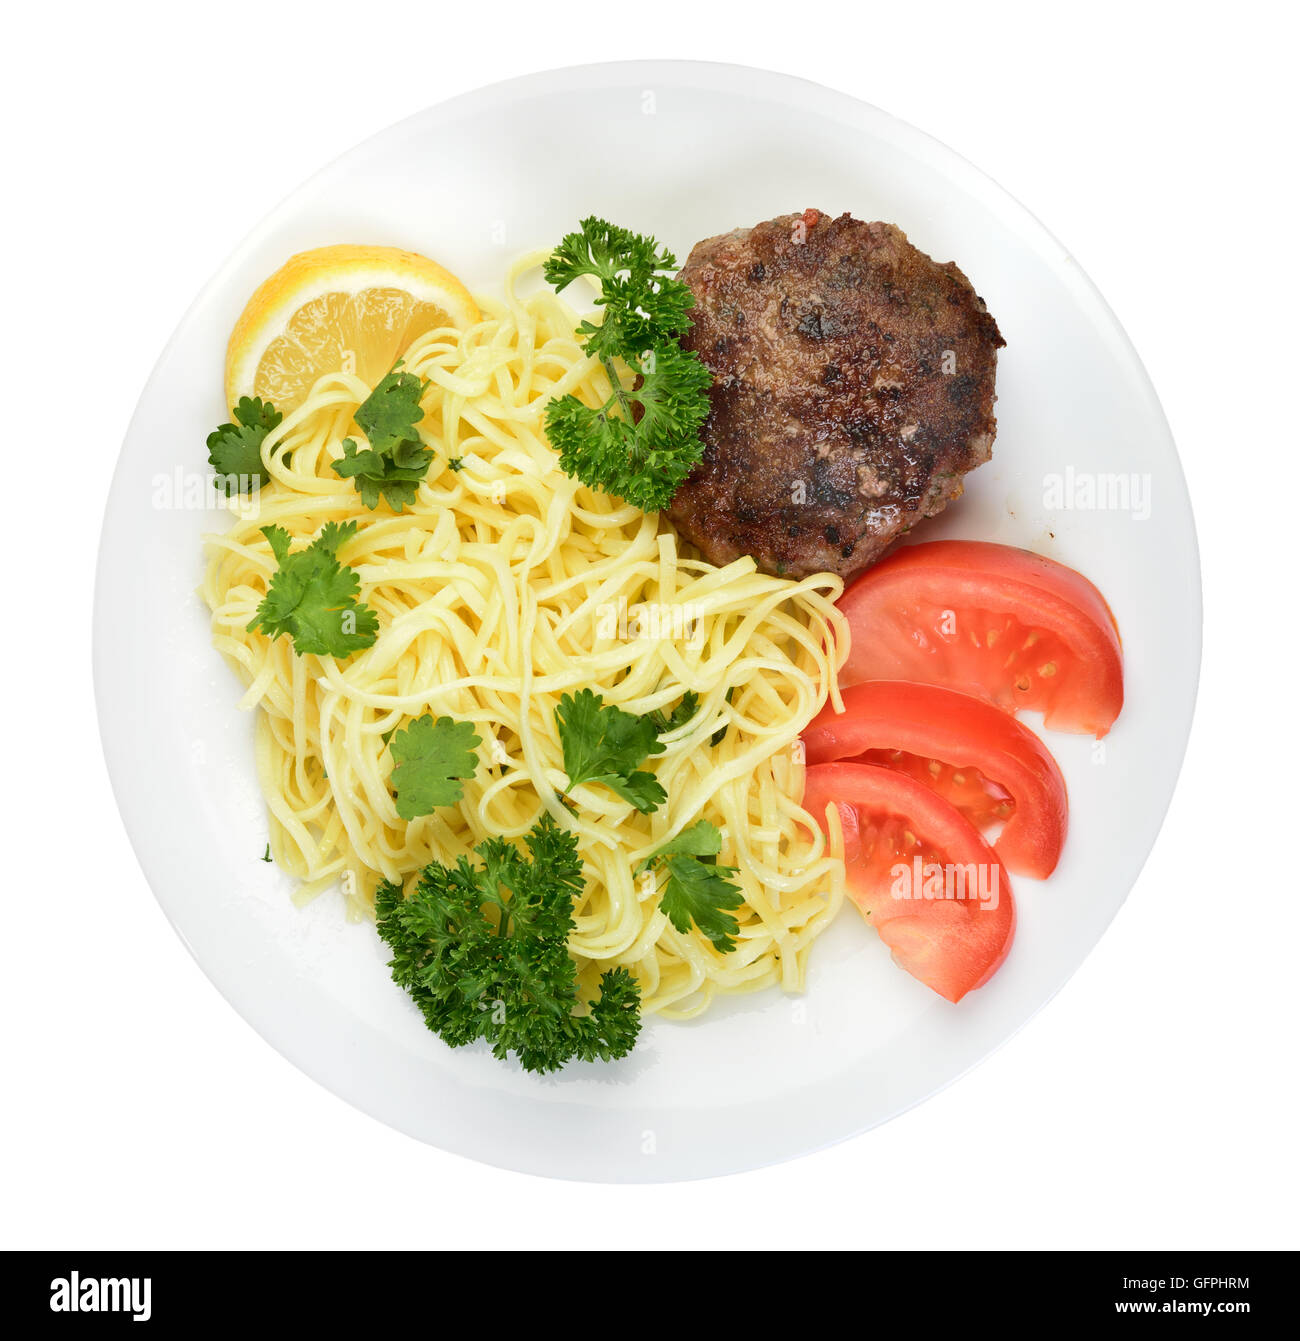 Spaghetti and Meatballs on plate isolated Top view Stock Photo